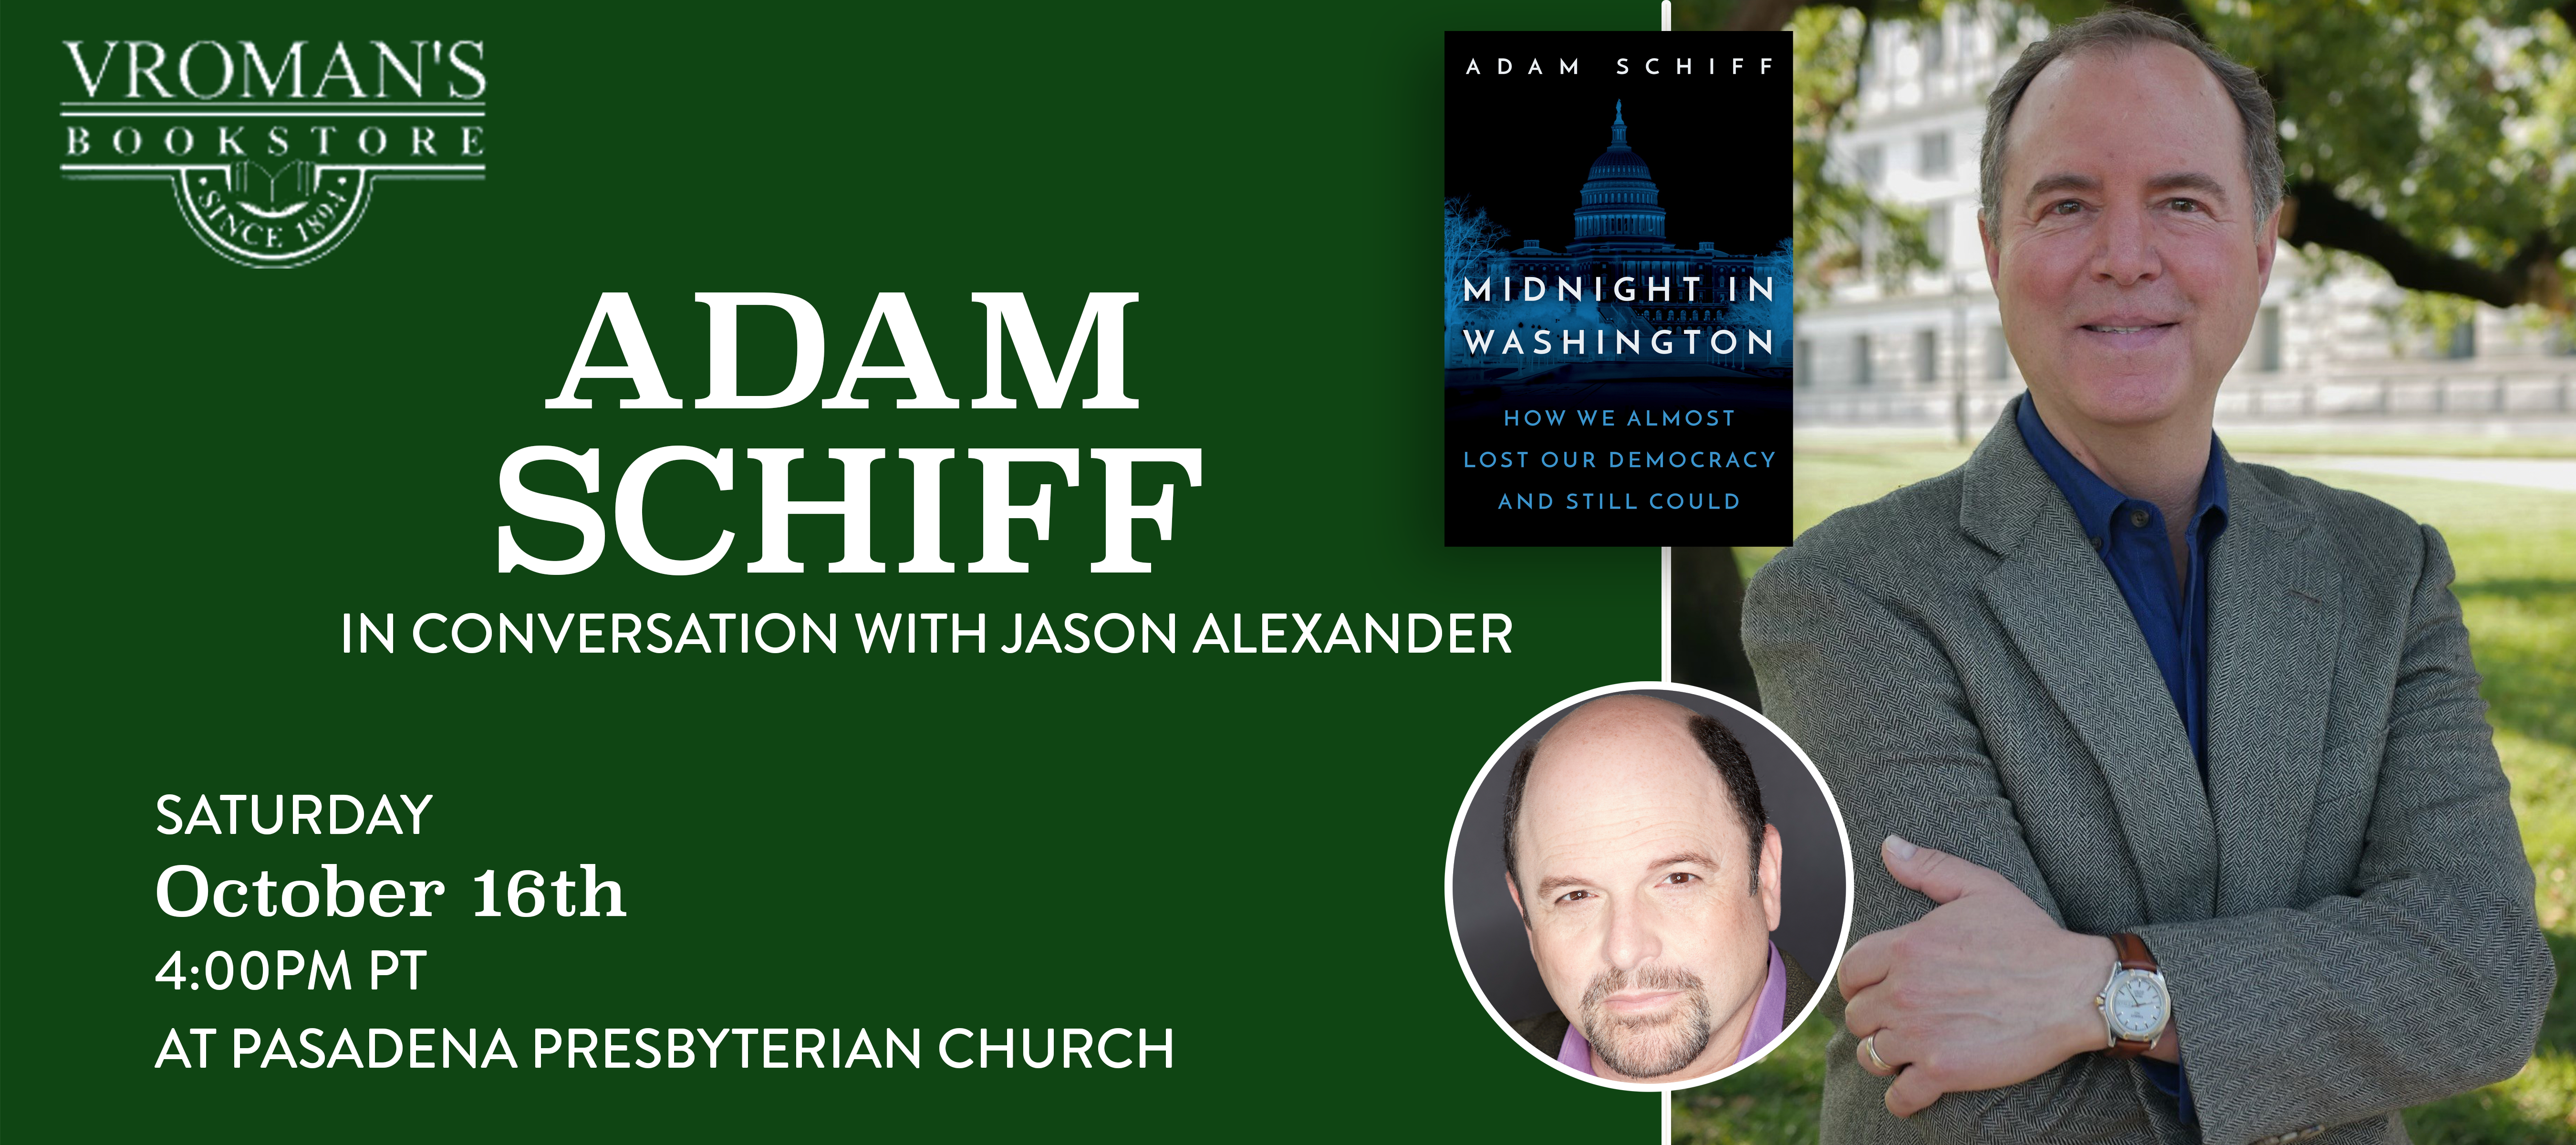 Image of green banner with details for event on Saturday, October 16, 4pm  Vroman's presents Congressman Adam Schiff, in conversation with Jason Alexander, discussing Midnight in Washington: How We Almost Lost Our Democracy and Still Could